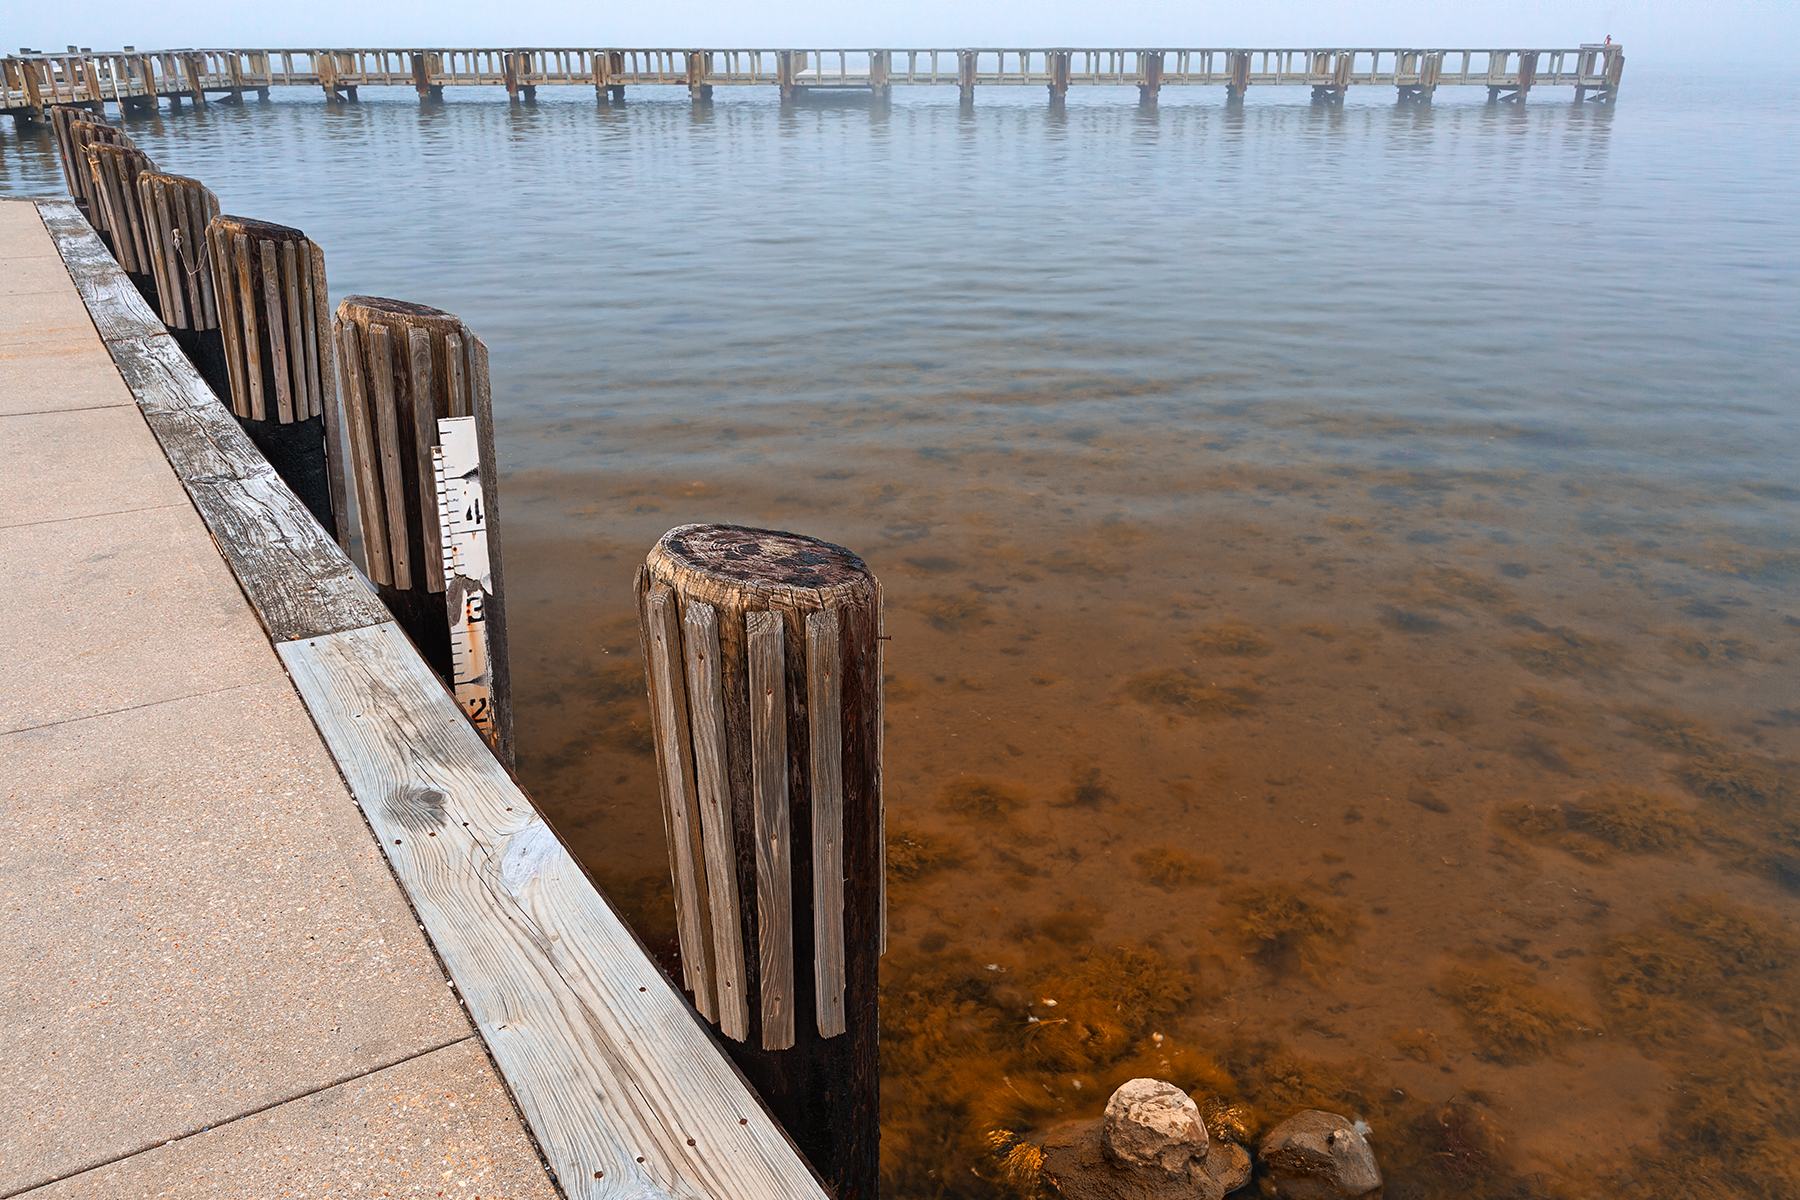 Misty assateague pier - hdr photo